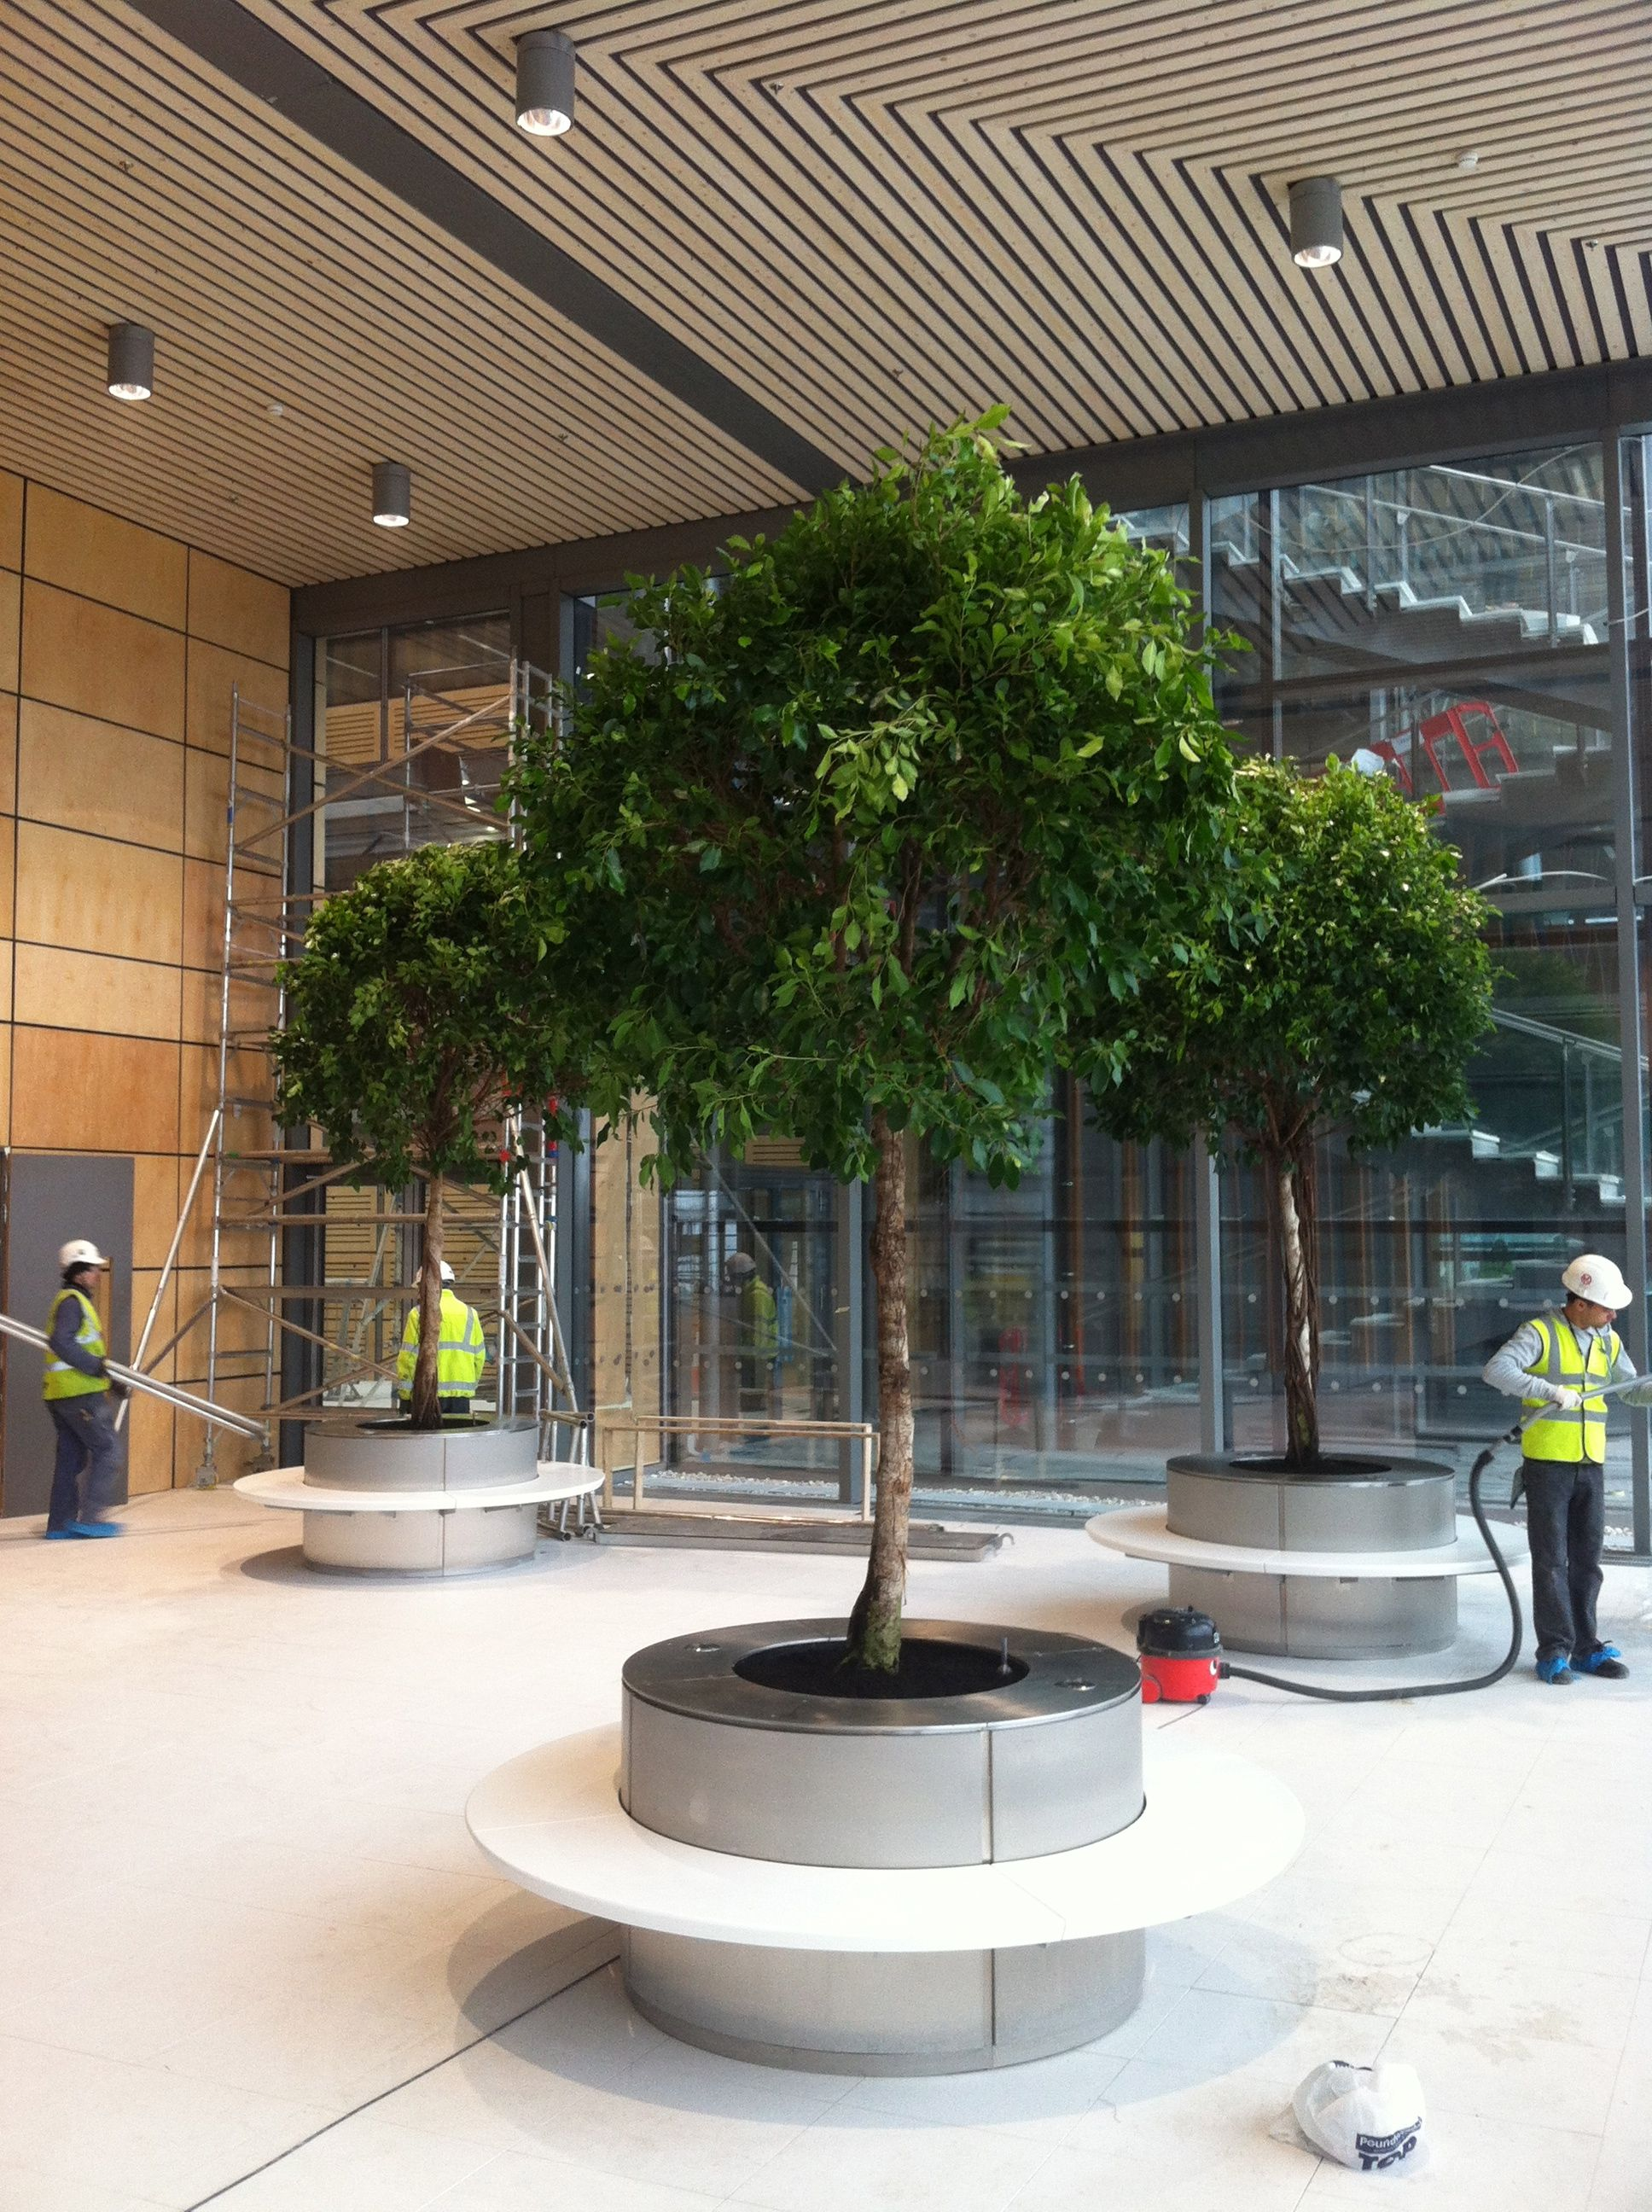 4m Ficus Trees Planted Into Circular Stainless Steel Planter Bench In A Public Space Within An Office Building Indoor Planters Plants Garden Design